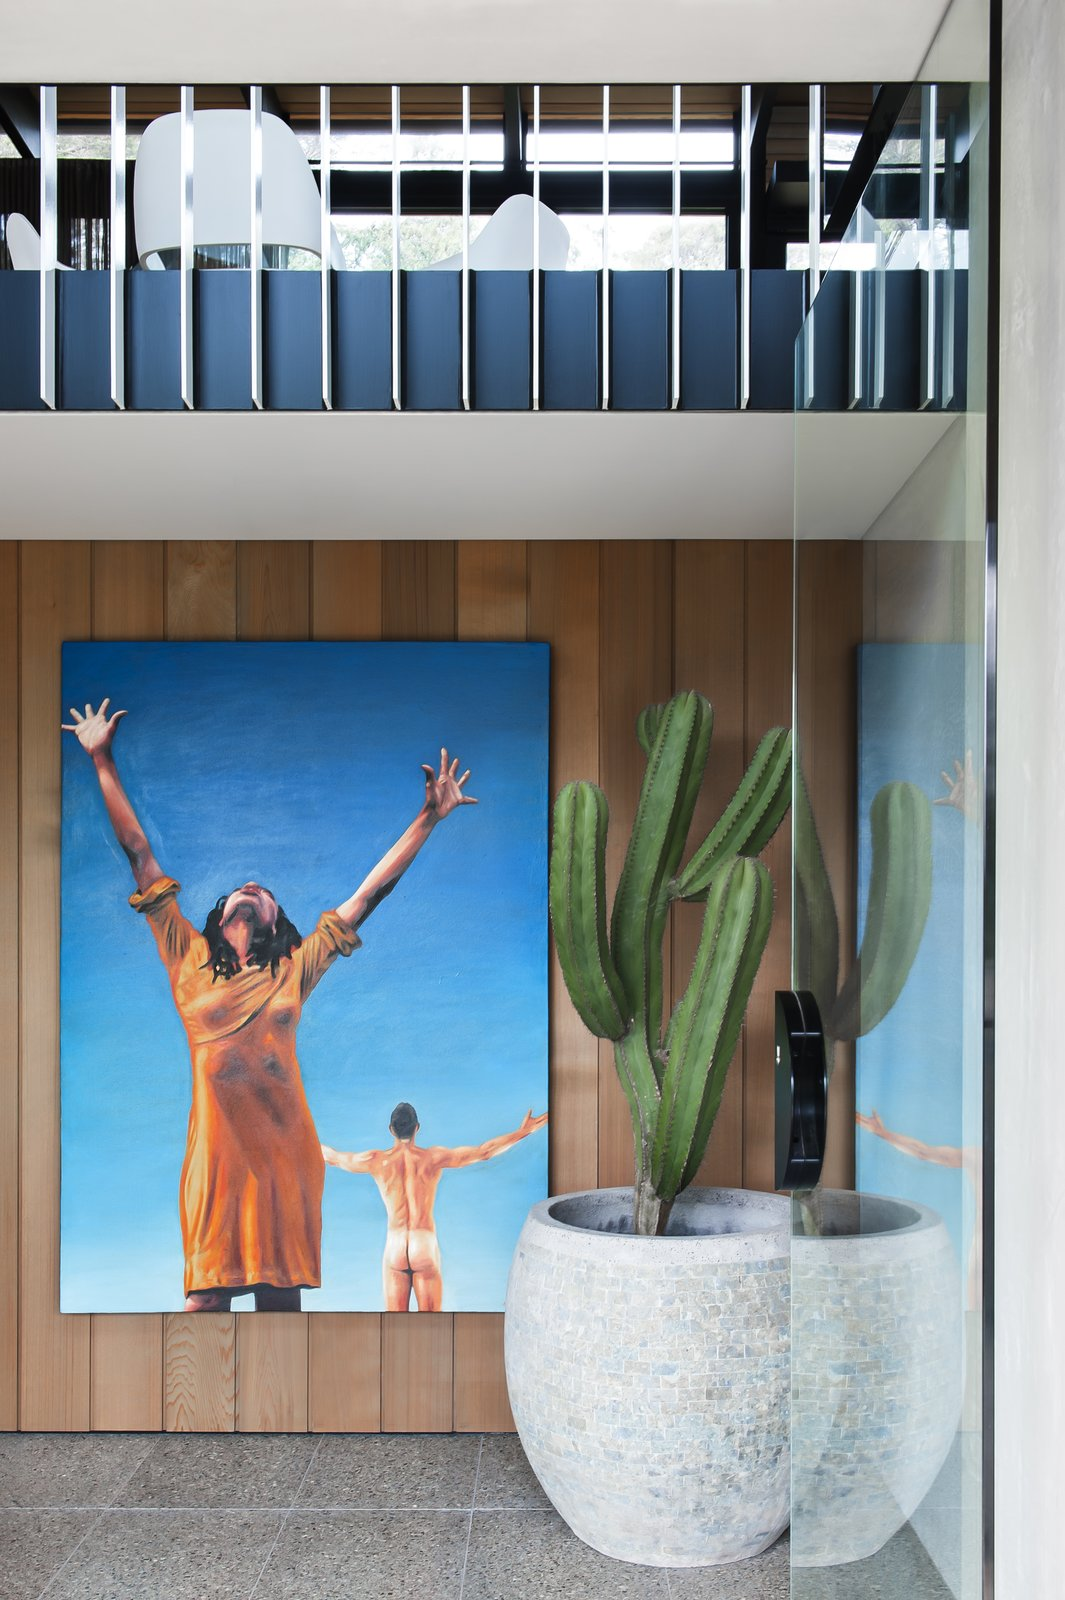 Photo 7 of 7 in Unexpected Bursts of Color Enliven a Midcentury Pad in Australia